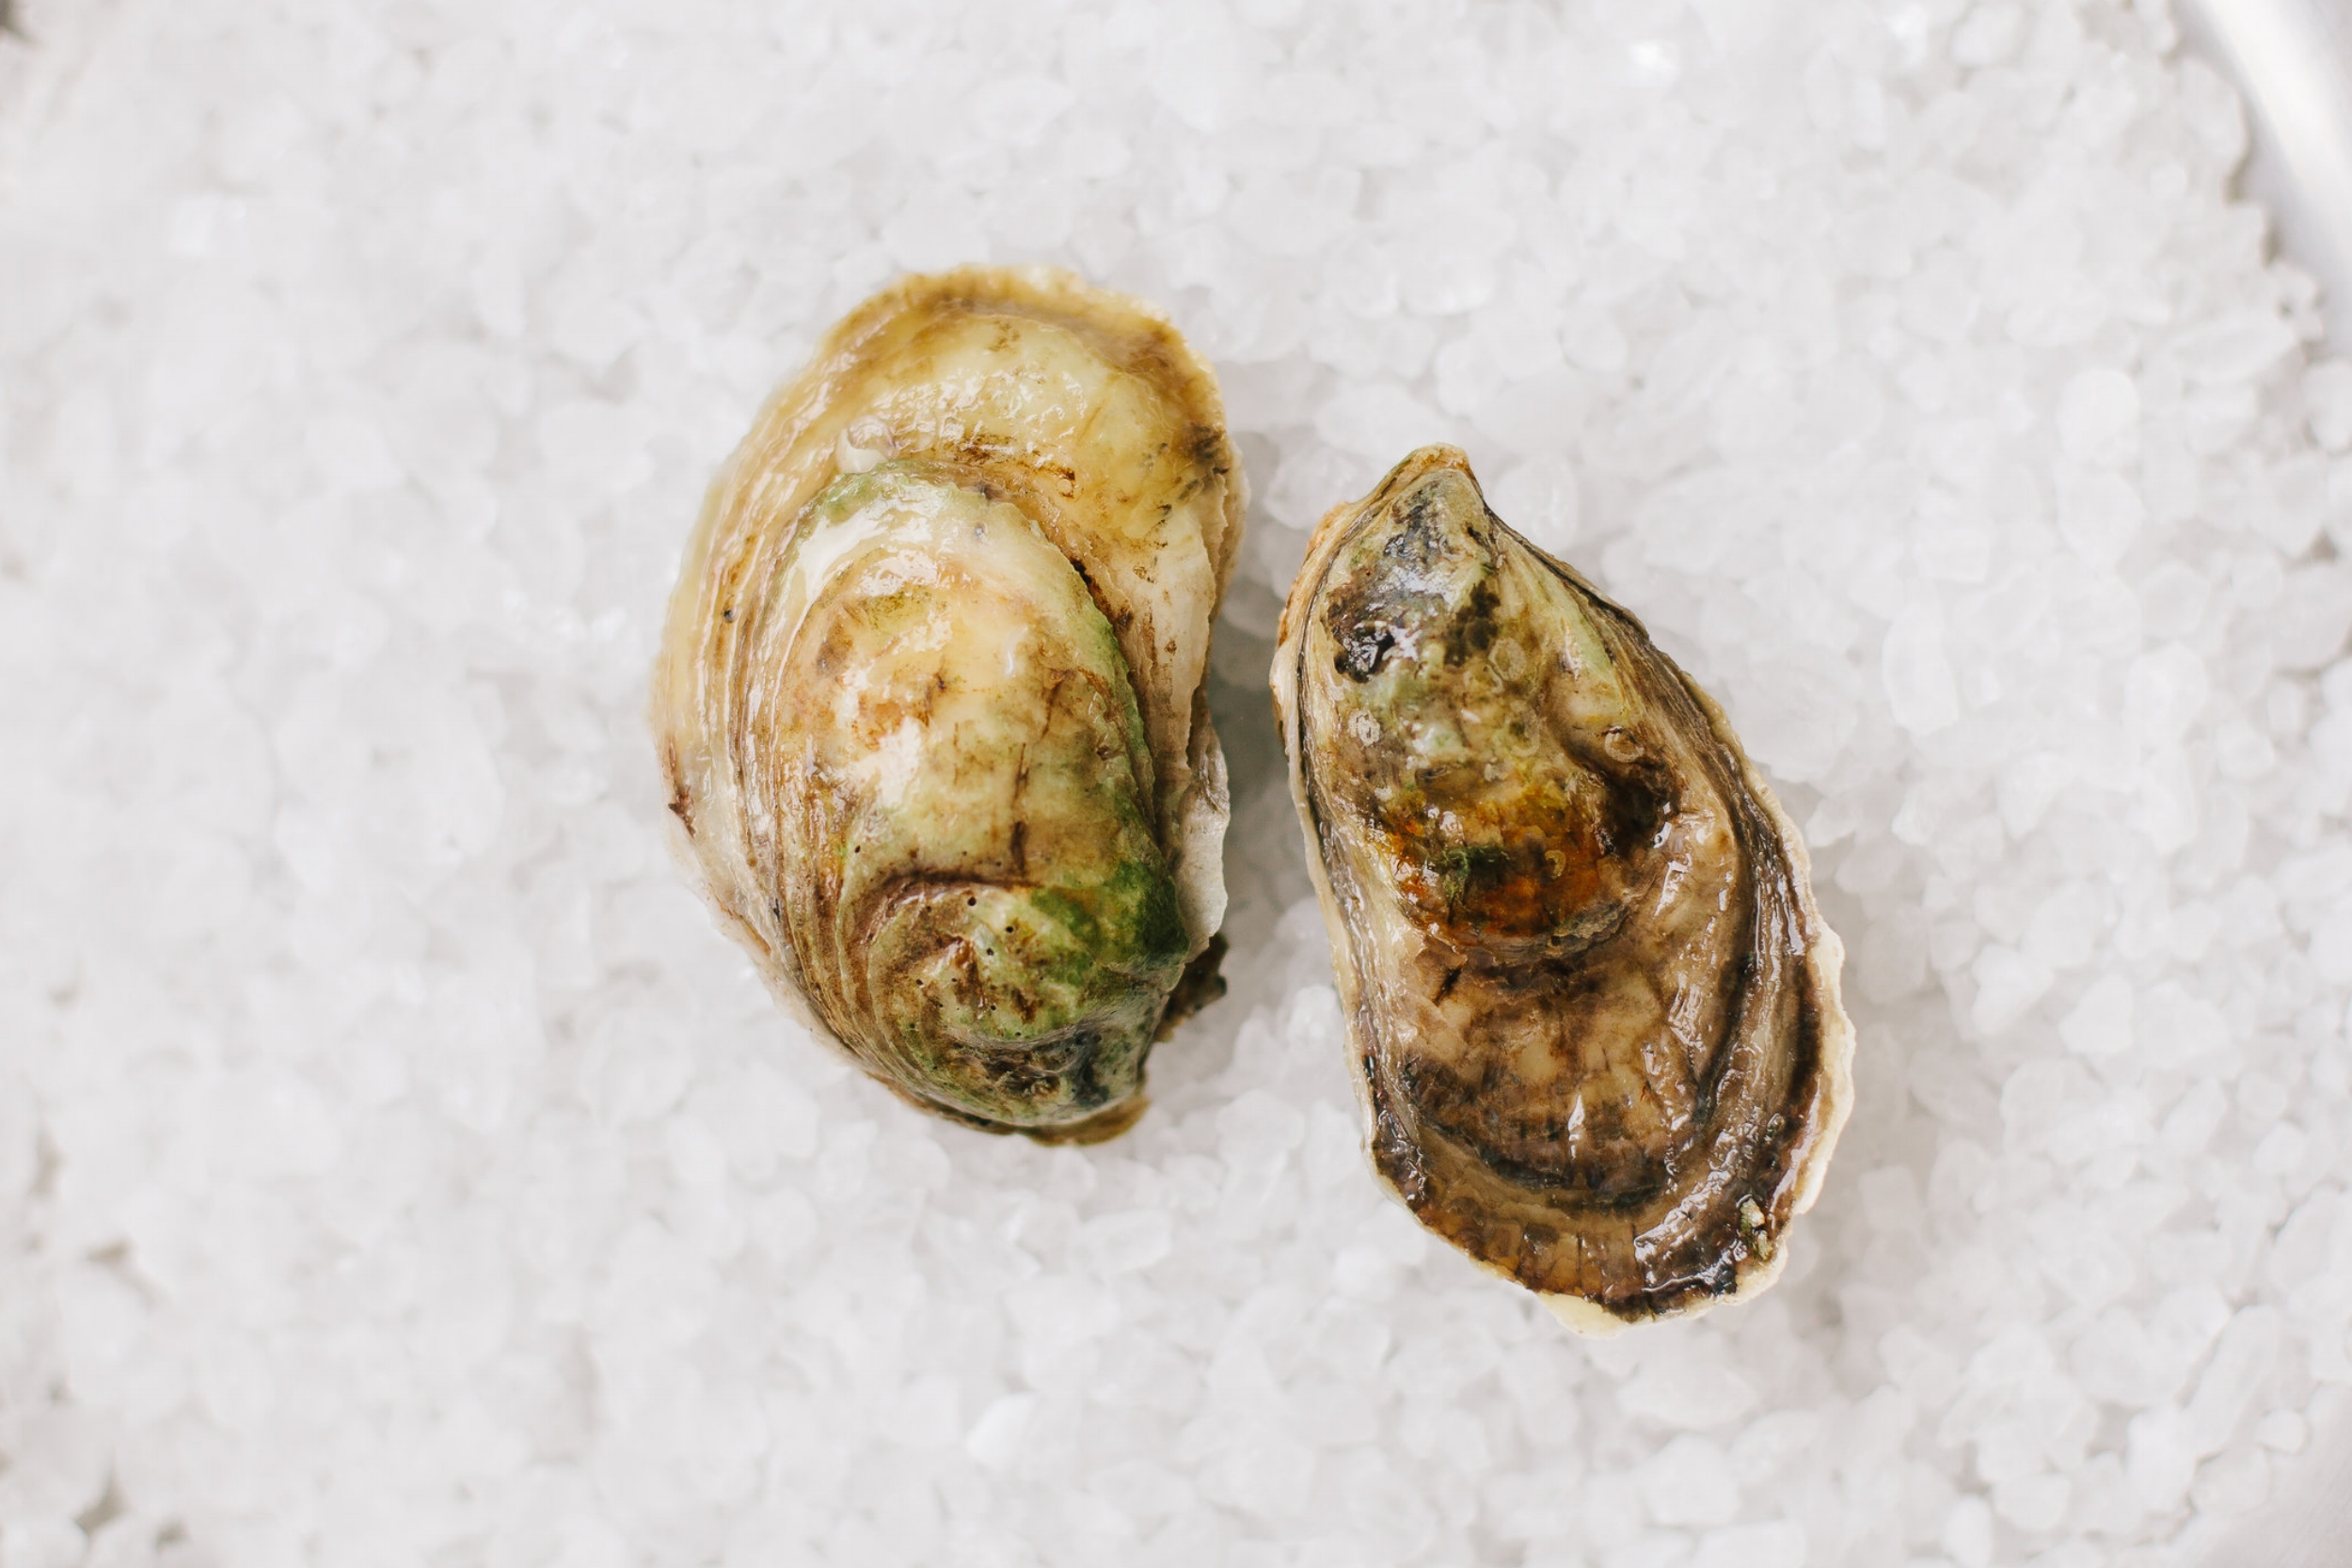 Malpeque - Origin: Malpeque Bay, Prince Edward Island, CanadaFlavor Profile: More robust flavor profile yet still easy to eat with tender meat and a nice balance between brininess and sweetness.